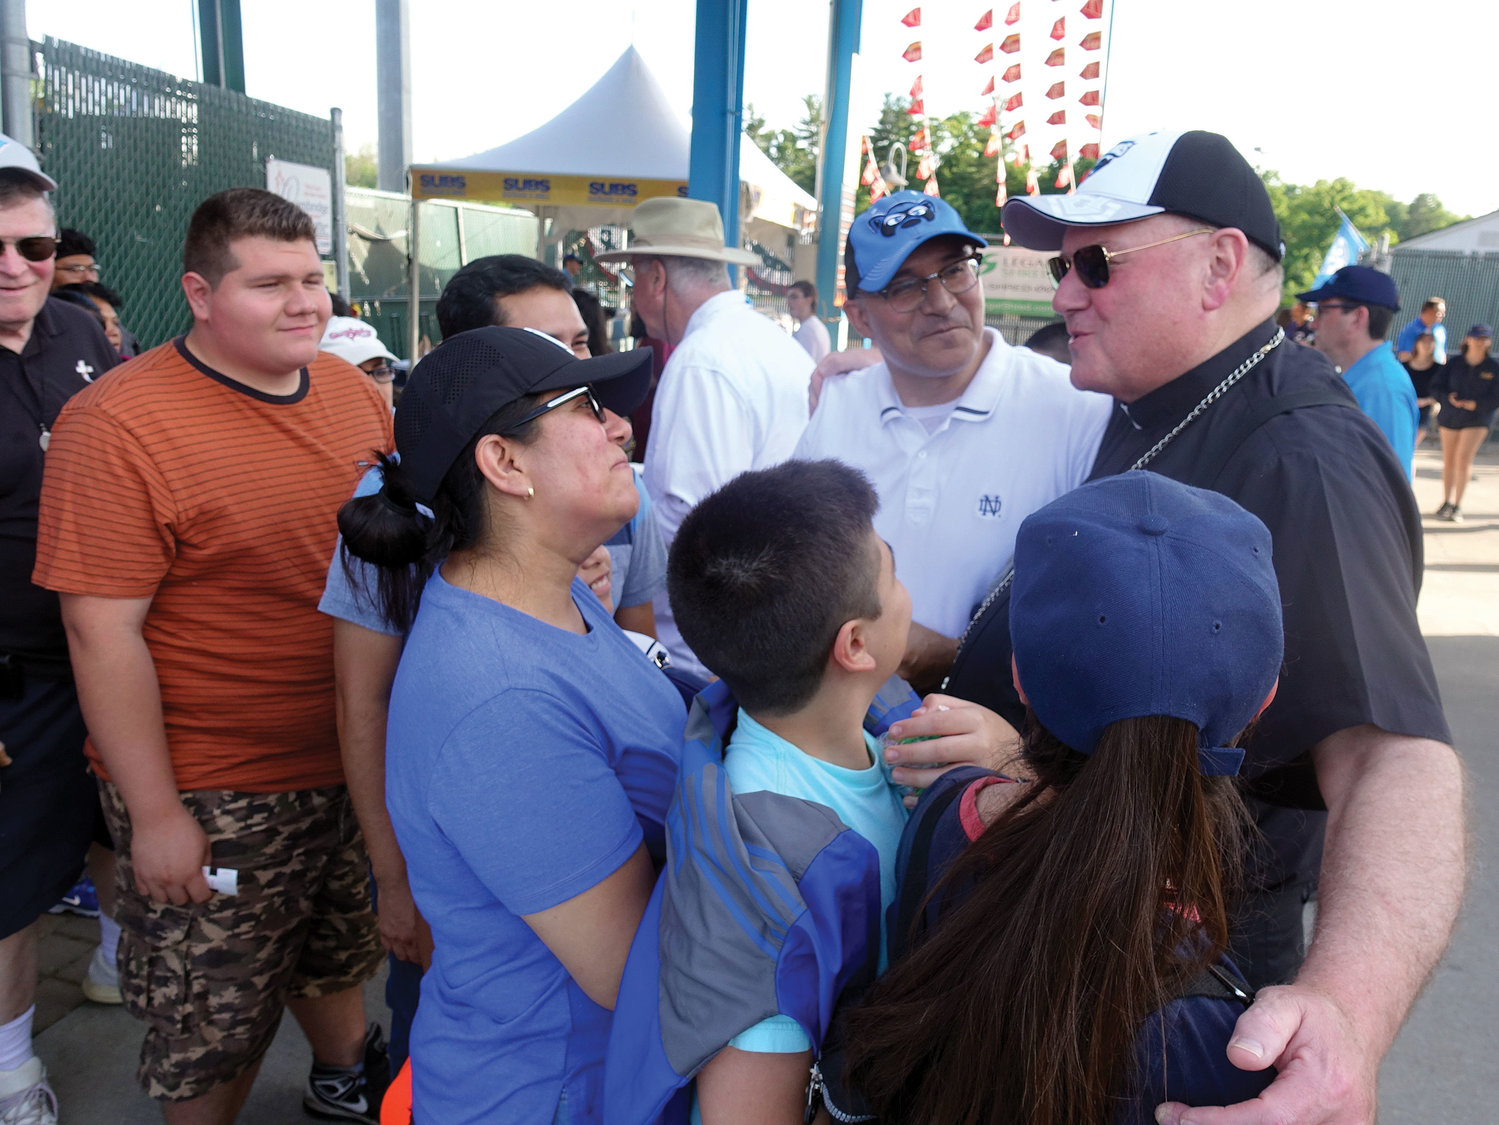 Cardinal Dolan greets fans during the ninth annual Catholic Education Night at Dutchess Stadium in Fishkill June 17.